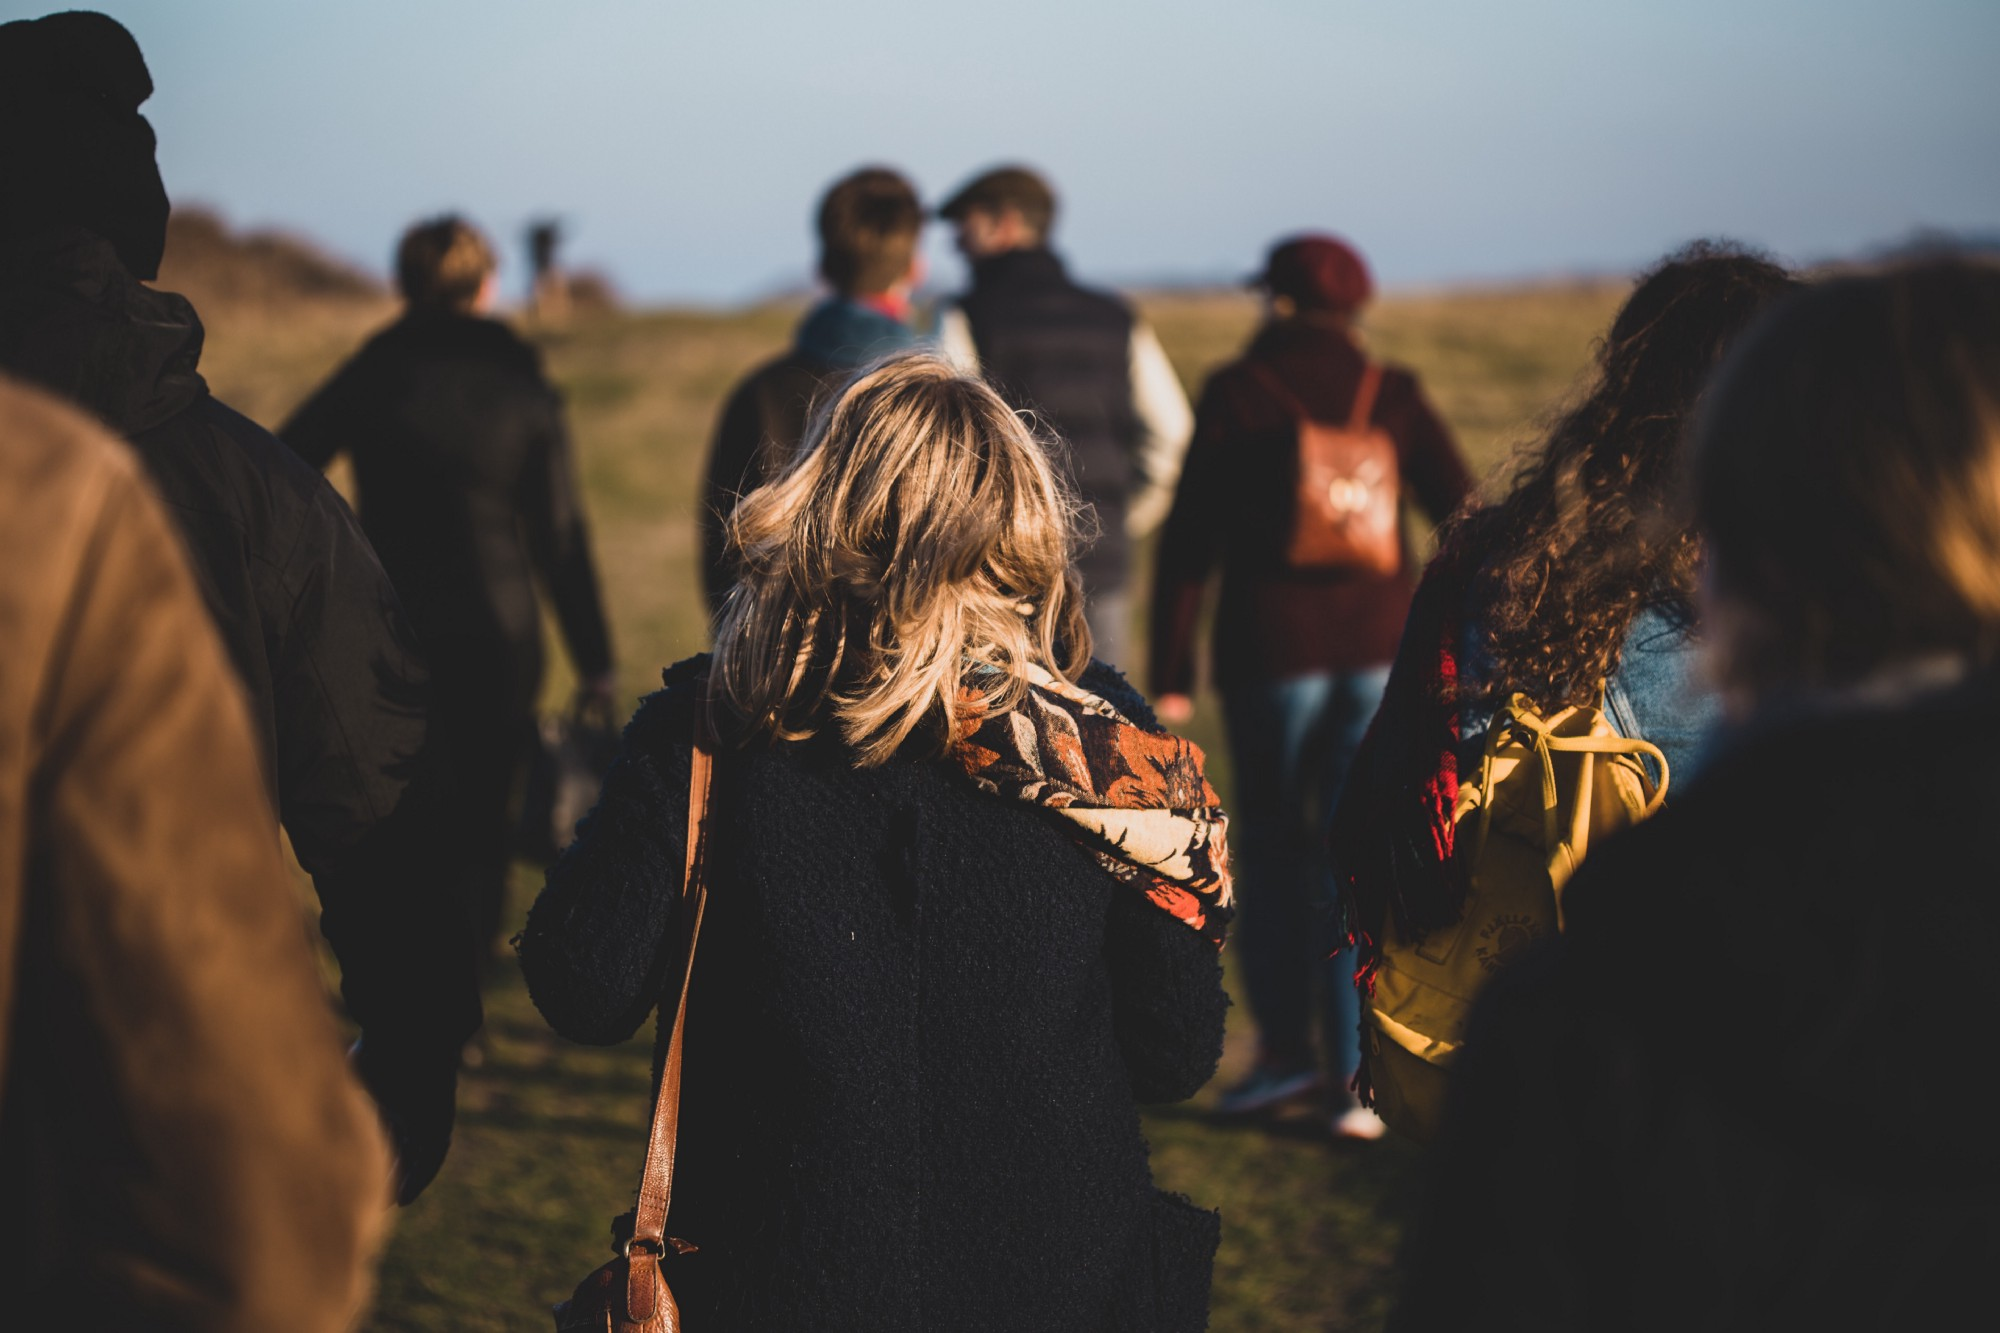 Photo of a group of people, in coats and scarves, walking up a field. The focus is soft around the edges, and only the person in the center is clear—black coat, orange patterned scarf, tousled blond hair around their shoulders.